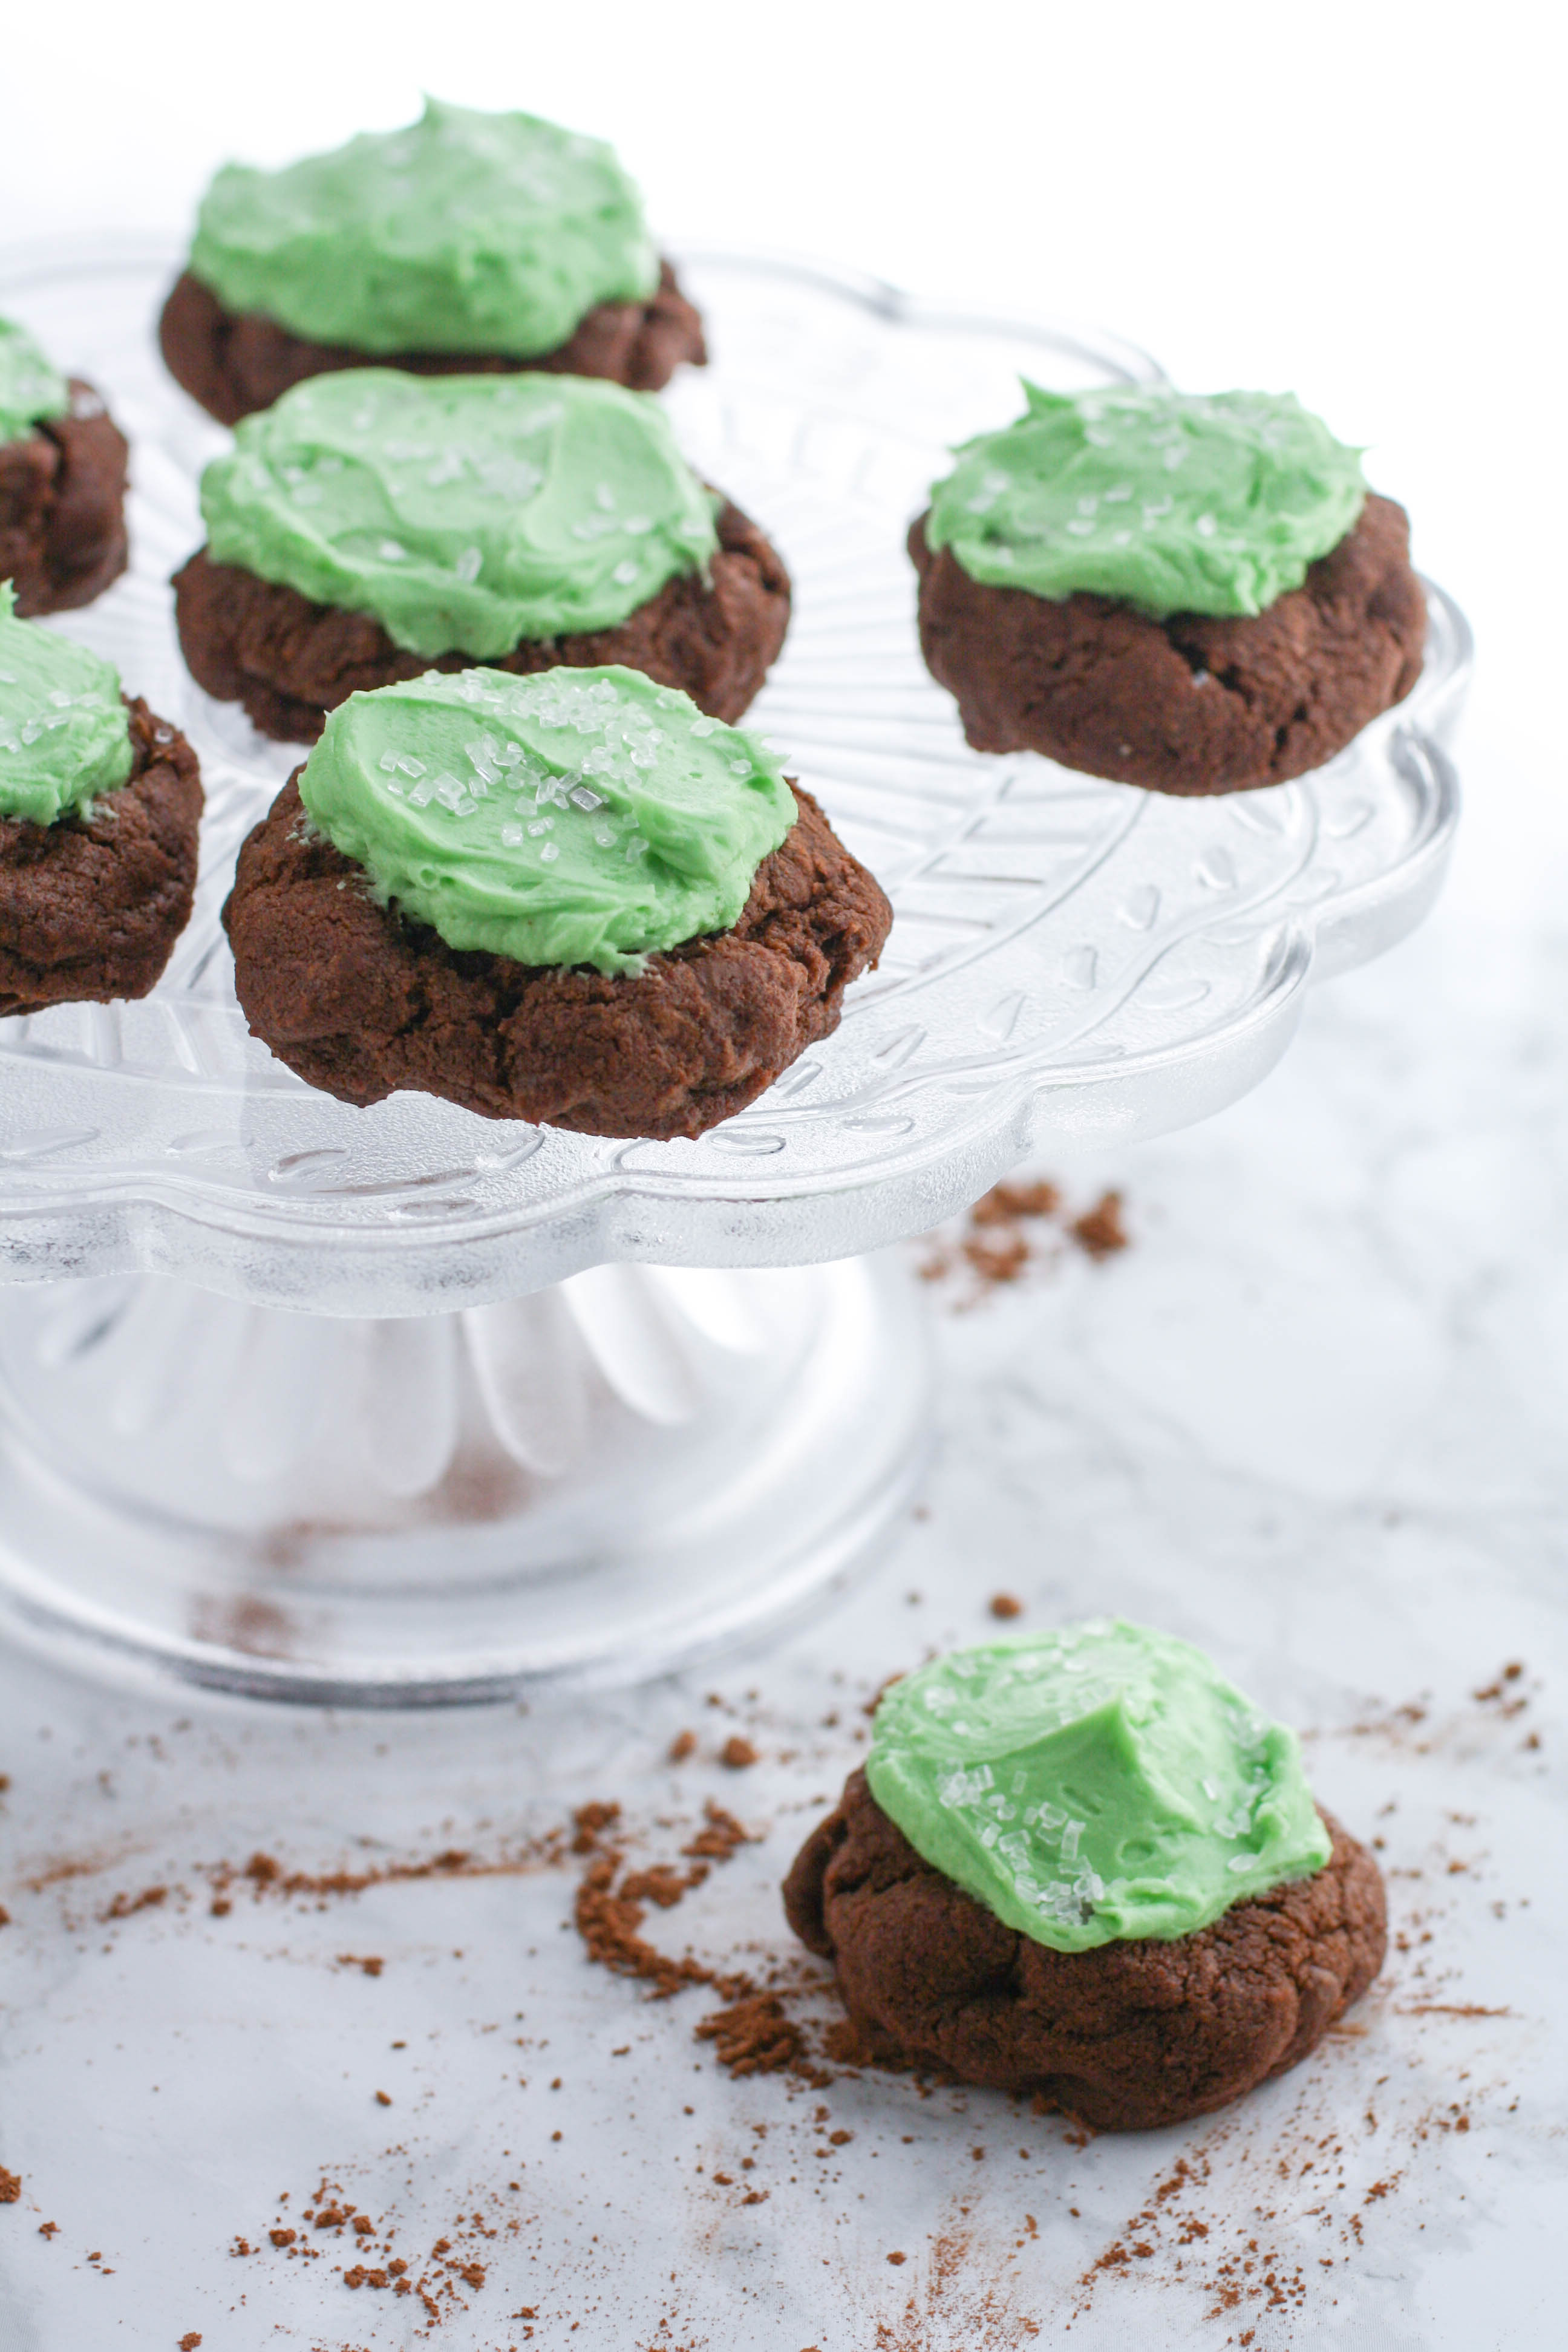 Double Chocolate Cookies with Baileys Buttercream Frosting are tasty treats that are perfect for St. Patrick's Day! You'll love Double Chocolate Cookies with Baileys Buttercream Frosting anytime of year!